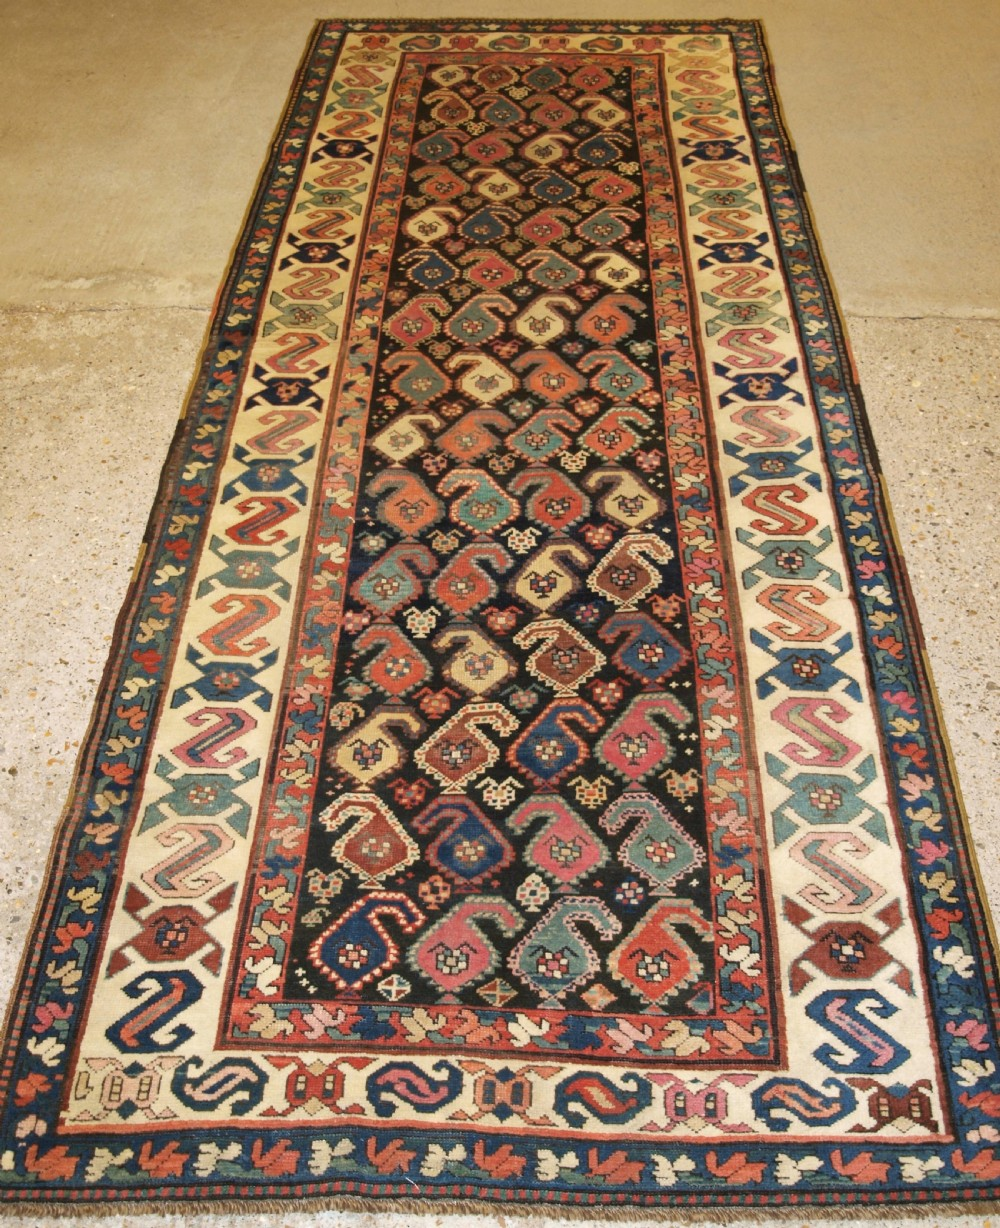 antique caucasian karabagh region runner colourful boteh design late 19th century